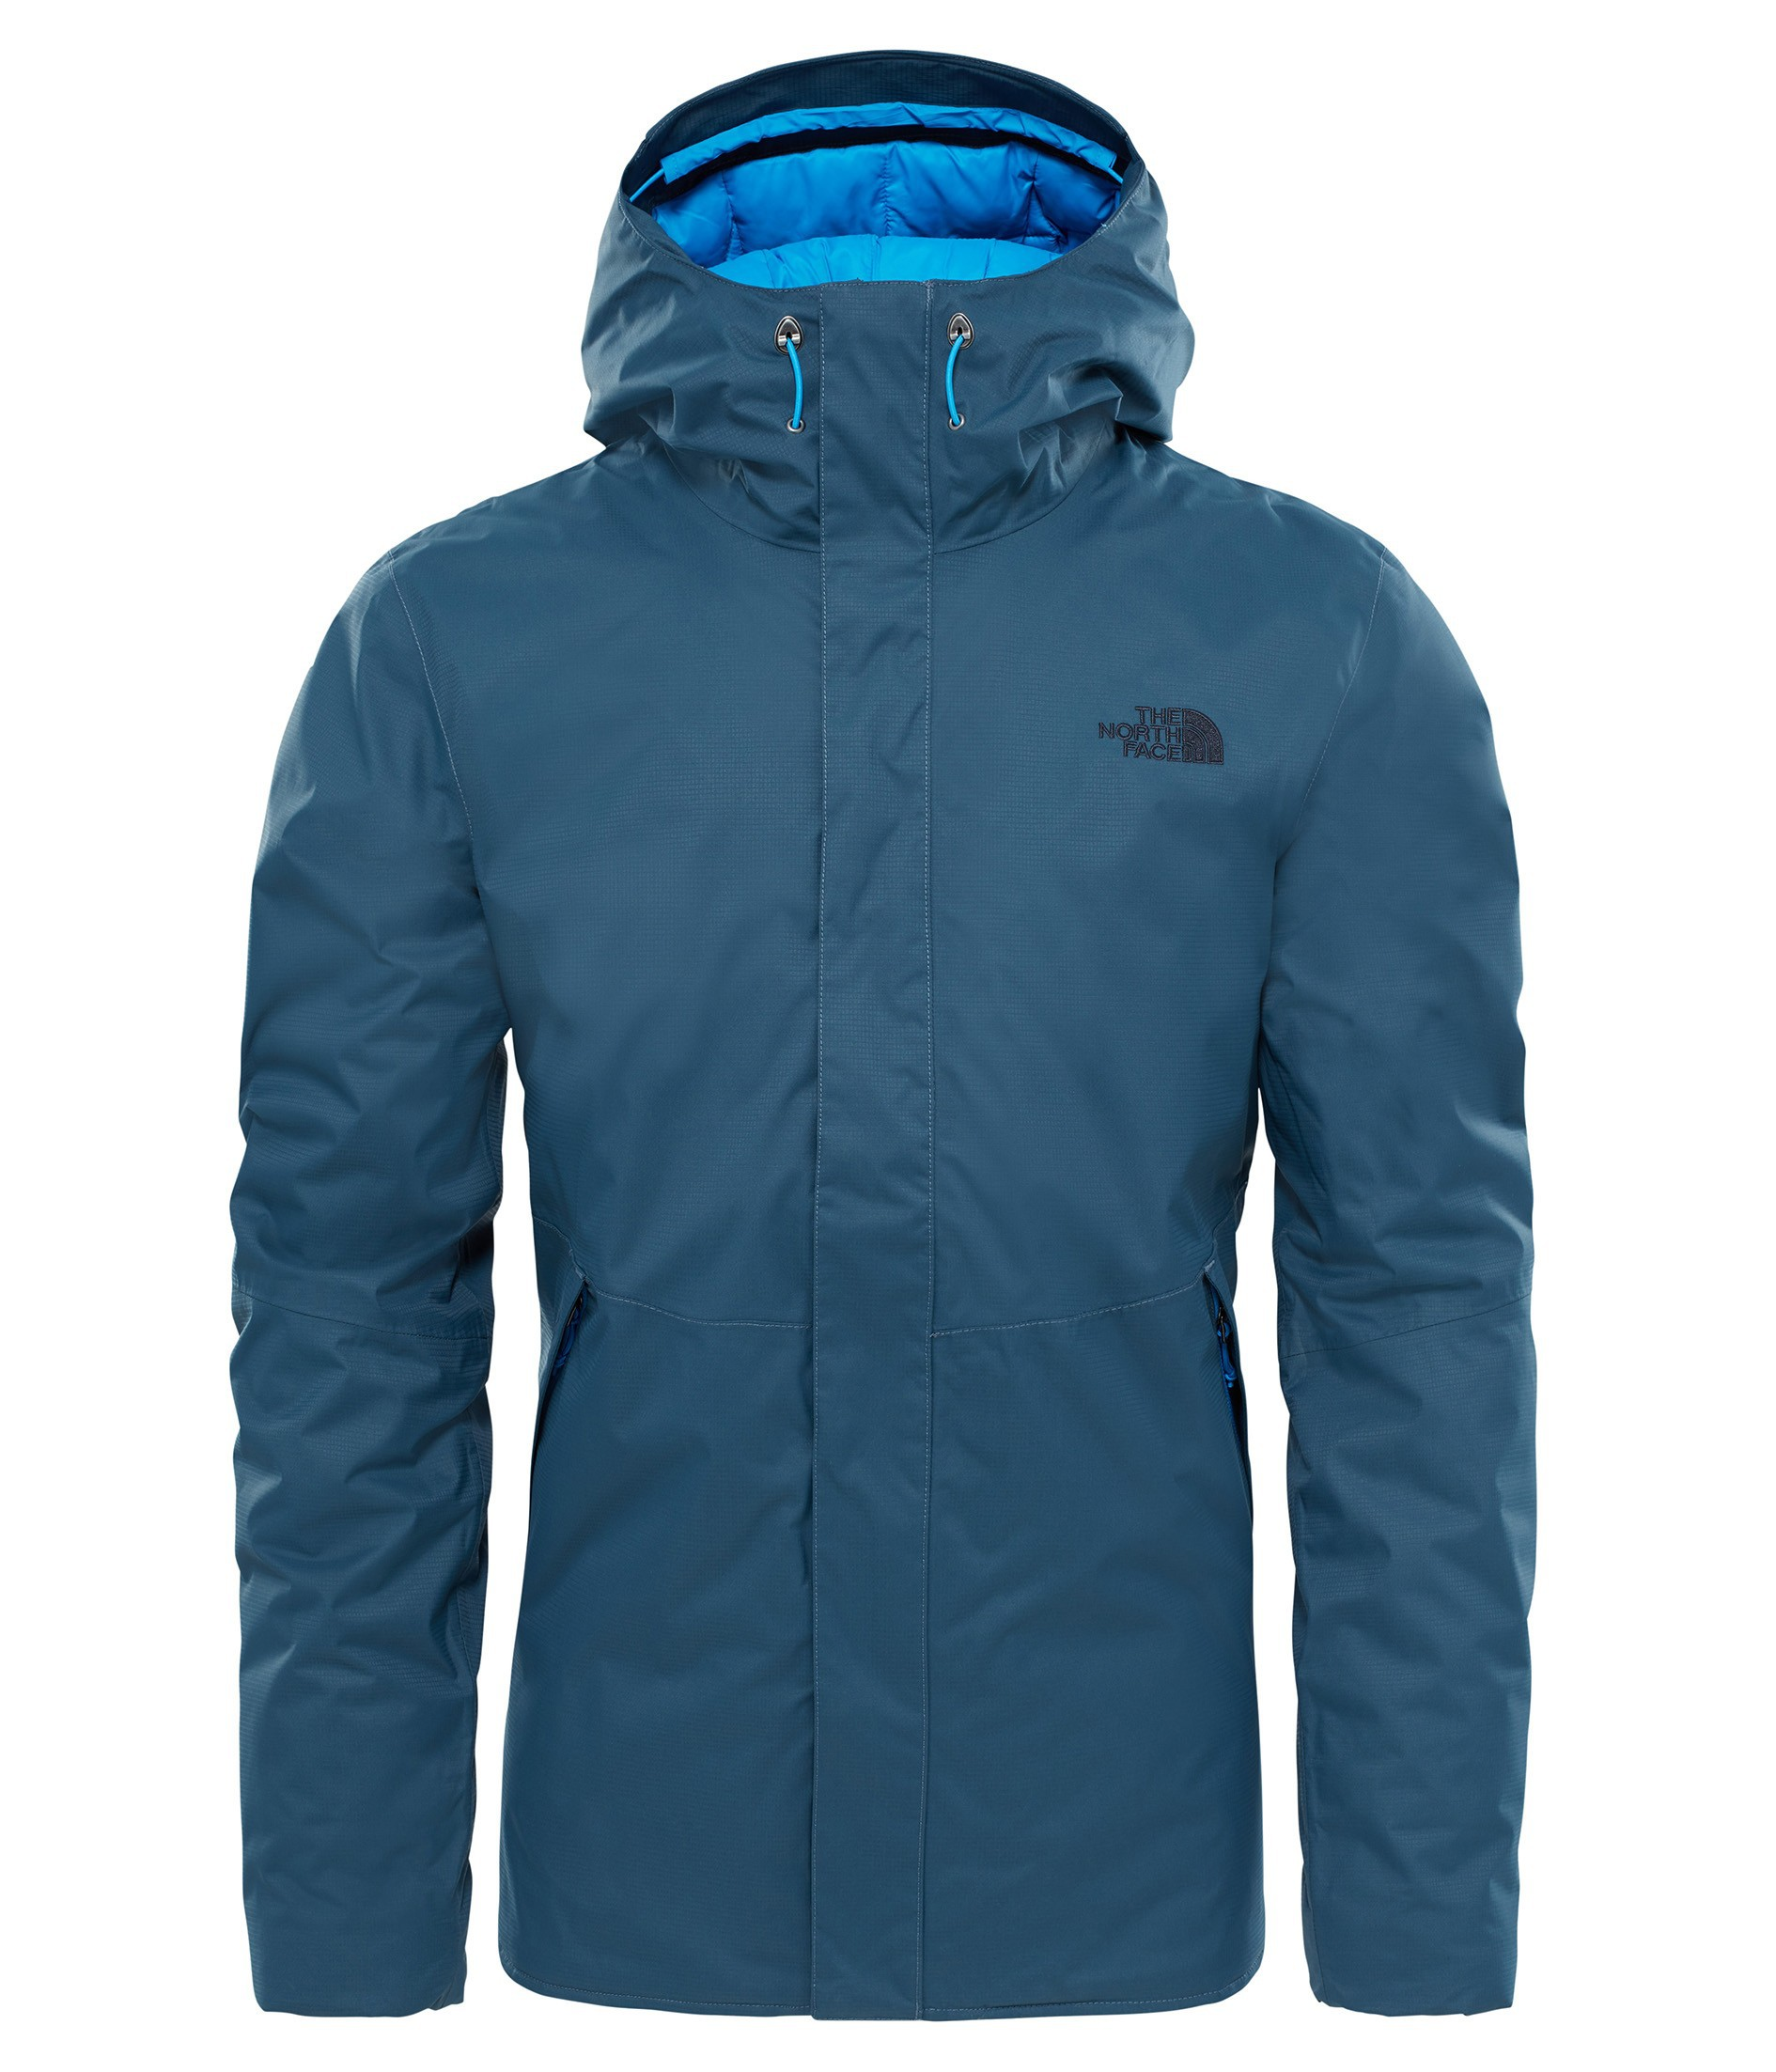 belleza hermosa en color Estados Unidos Chaqueta esqui The North Face Thermoball azul hombre ...